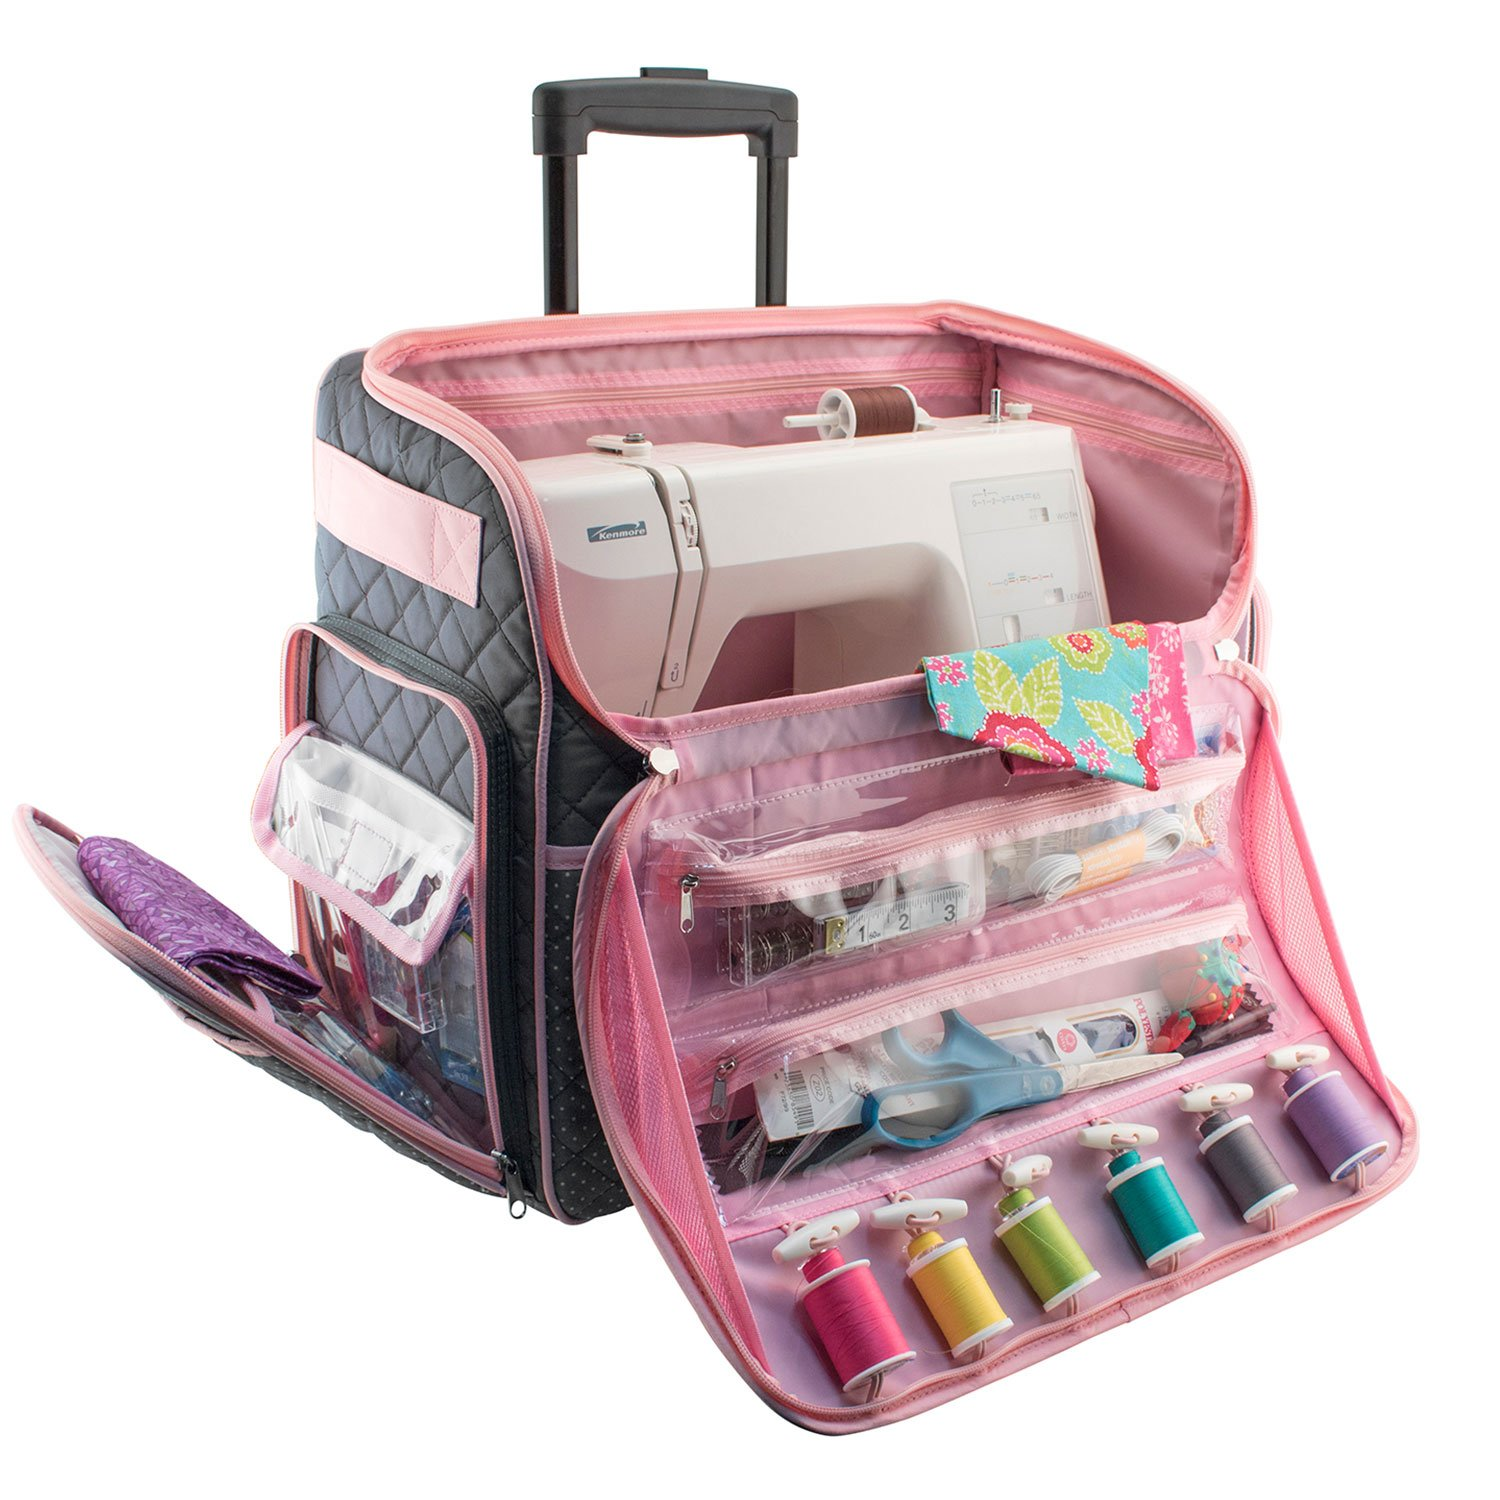 Everything Mary Deluxe Quilted Pink and Grey Rolling Sewing Machine Tote - Sewing Machine Case Fits Most Brother & Singer Sewing Machines, Sewing Bag with Wheels & Handle - Portable Sewing Case by Everything Mary